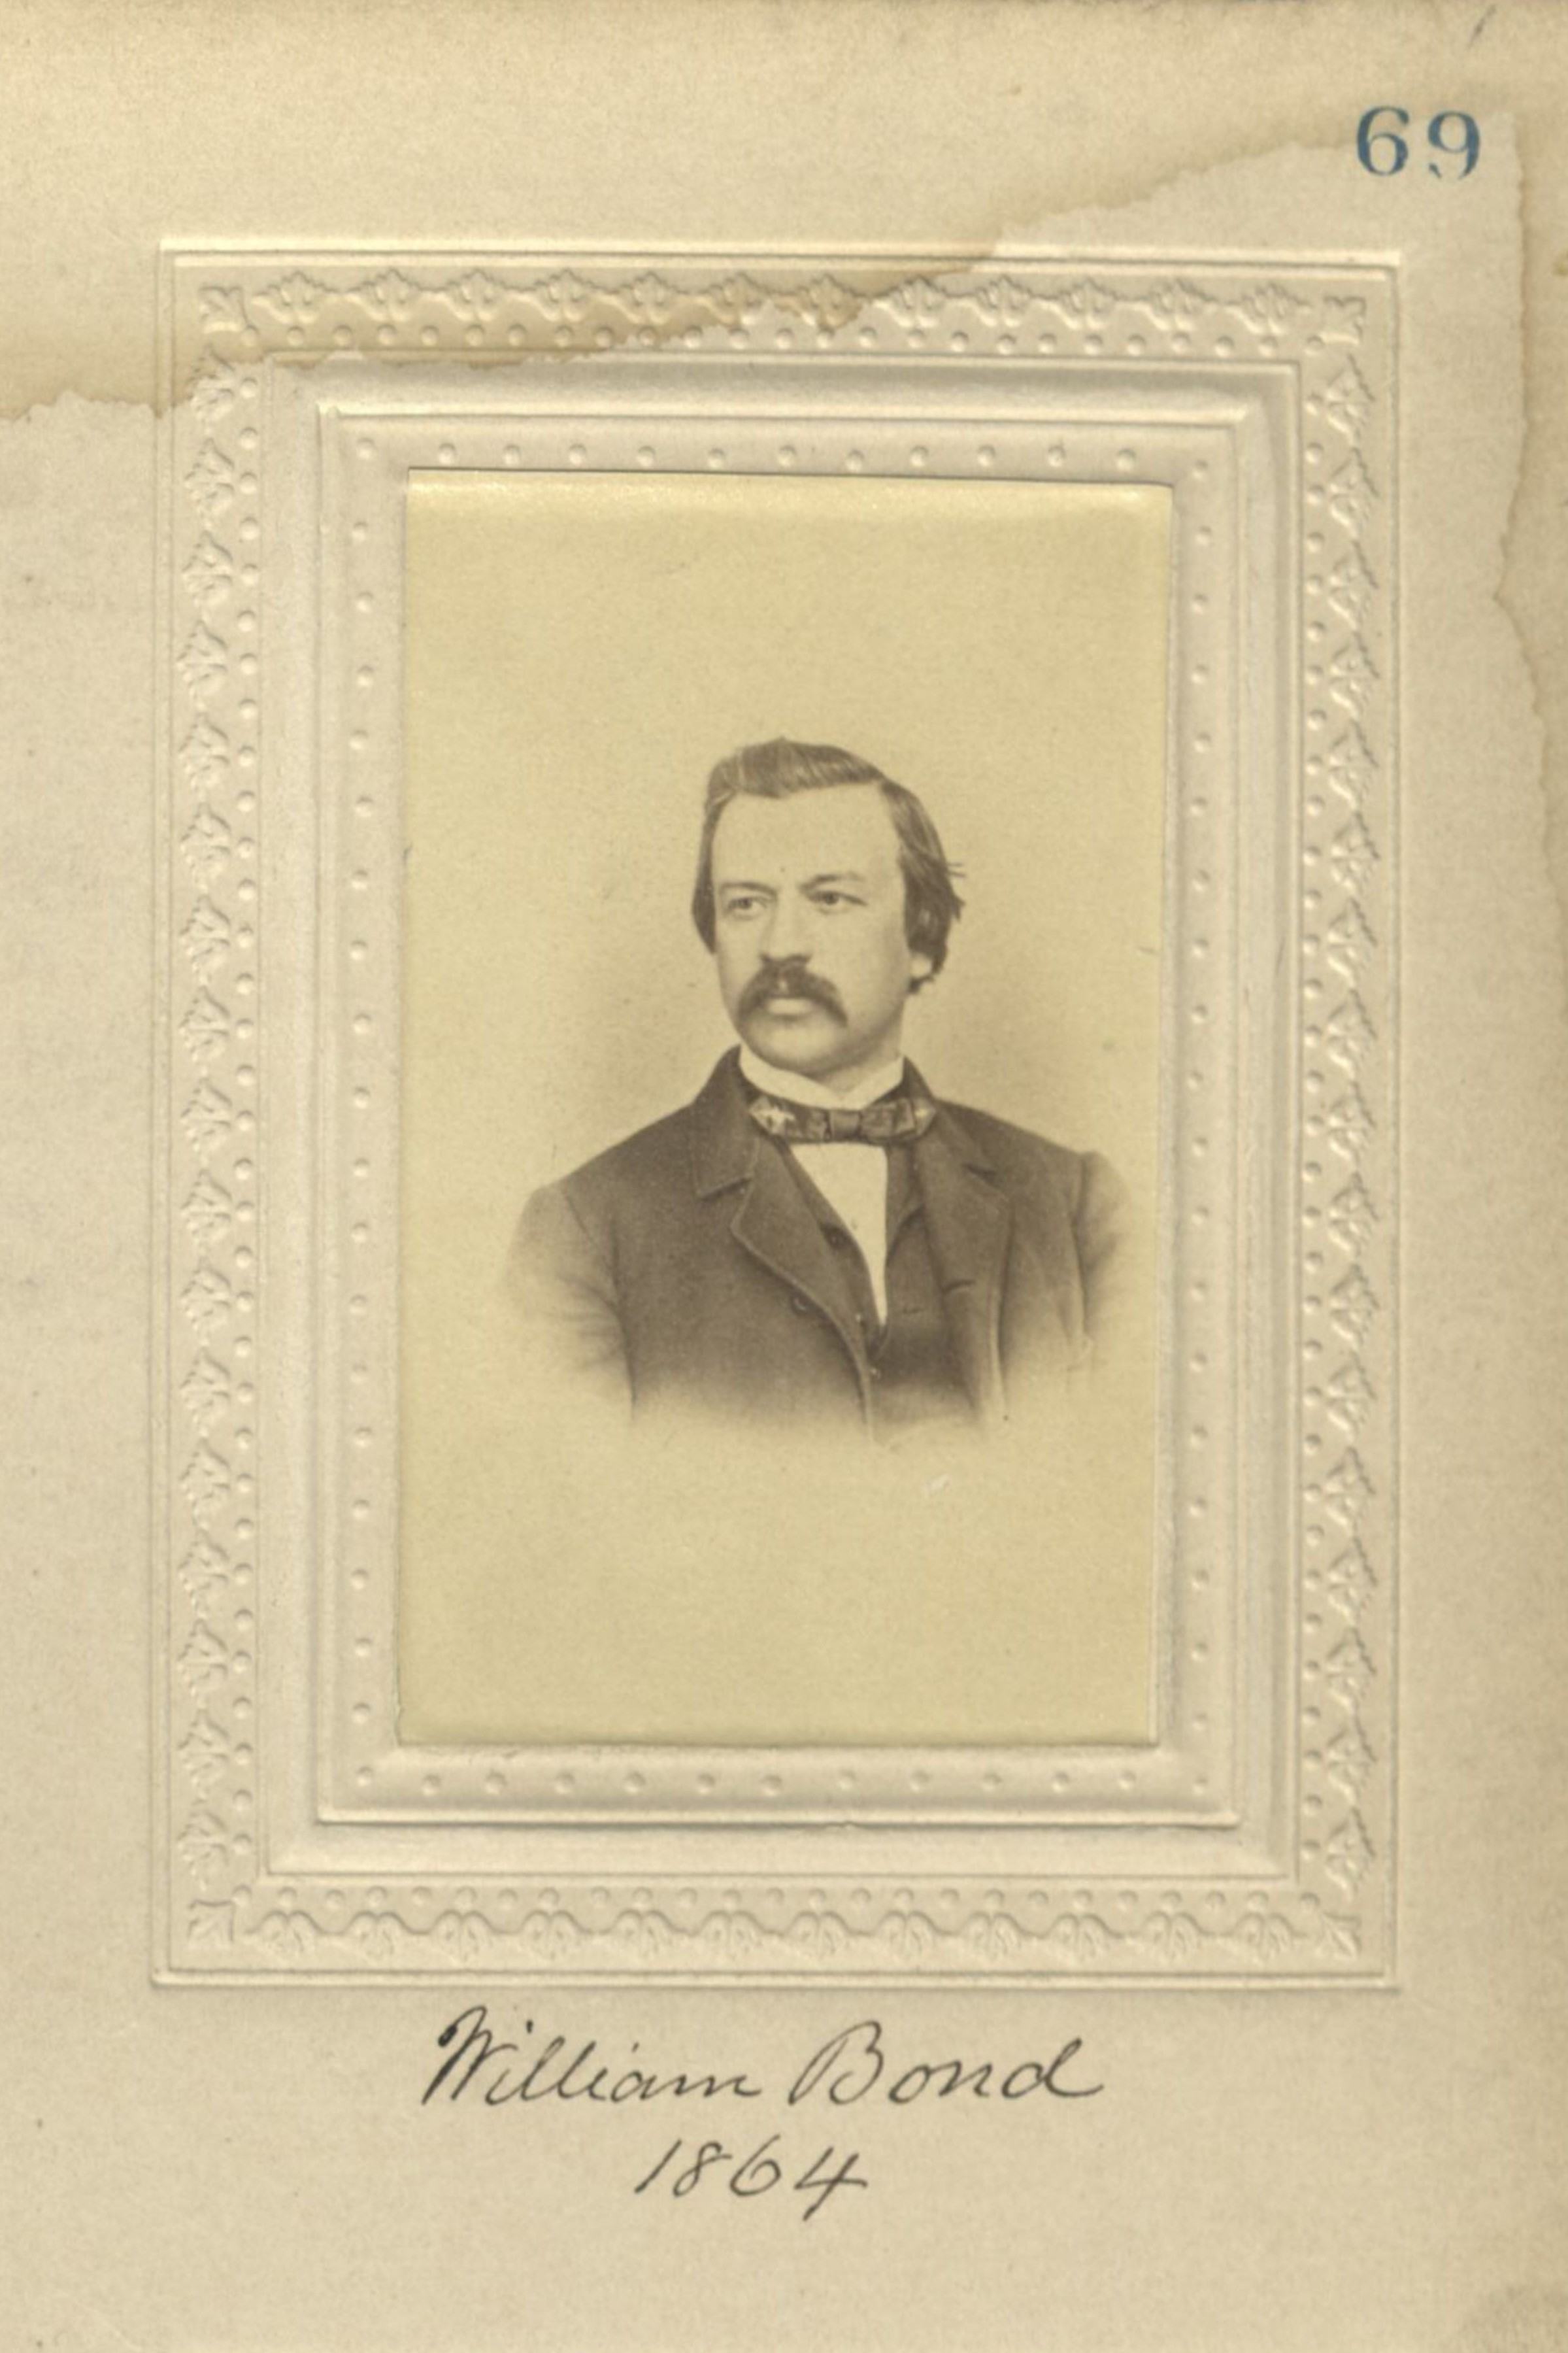 Member portrait of William Bond